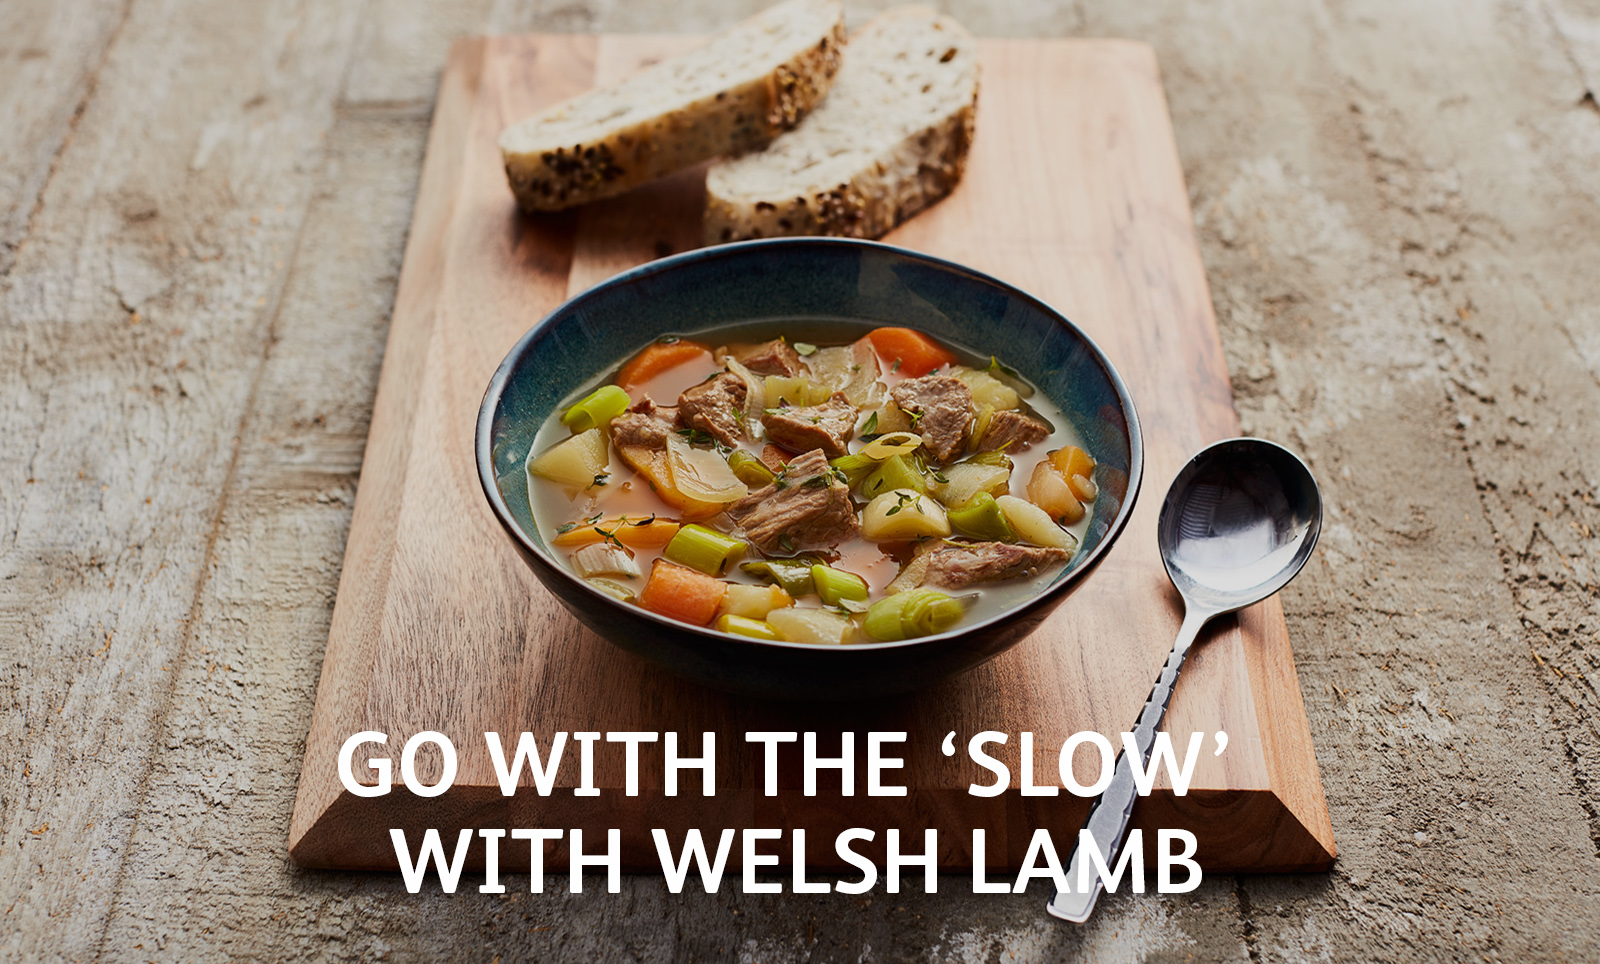 Go with the 'slow' with Welsh Lamb